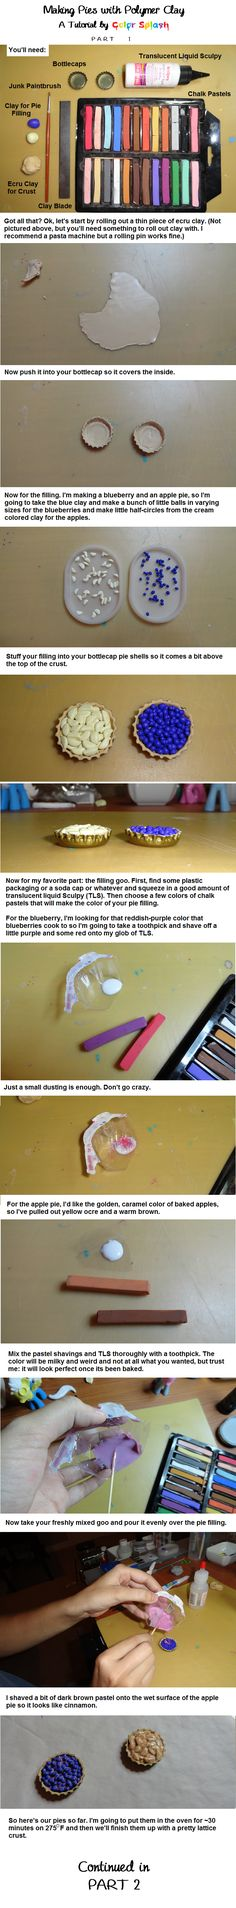 Polymer Clay Pie Tutorial PART 1 by Colour-Splashes.deviantart.com on @deviantART